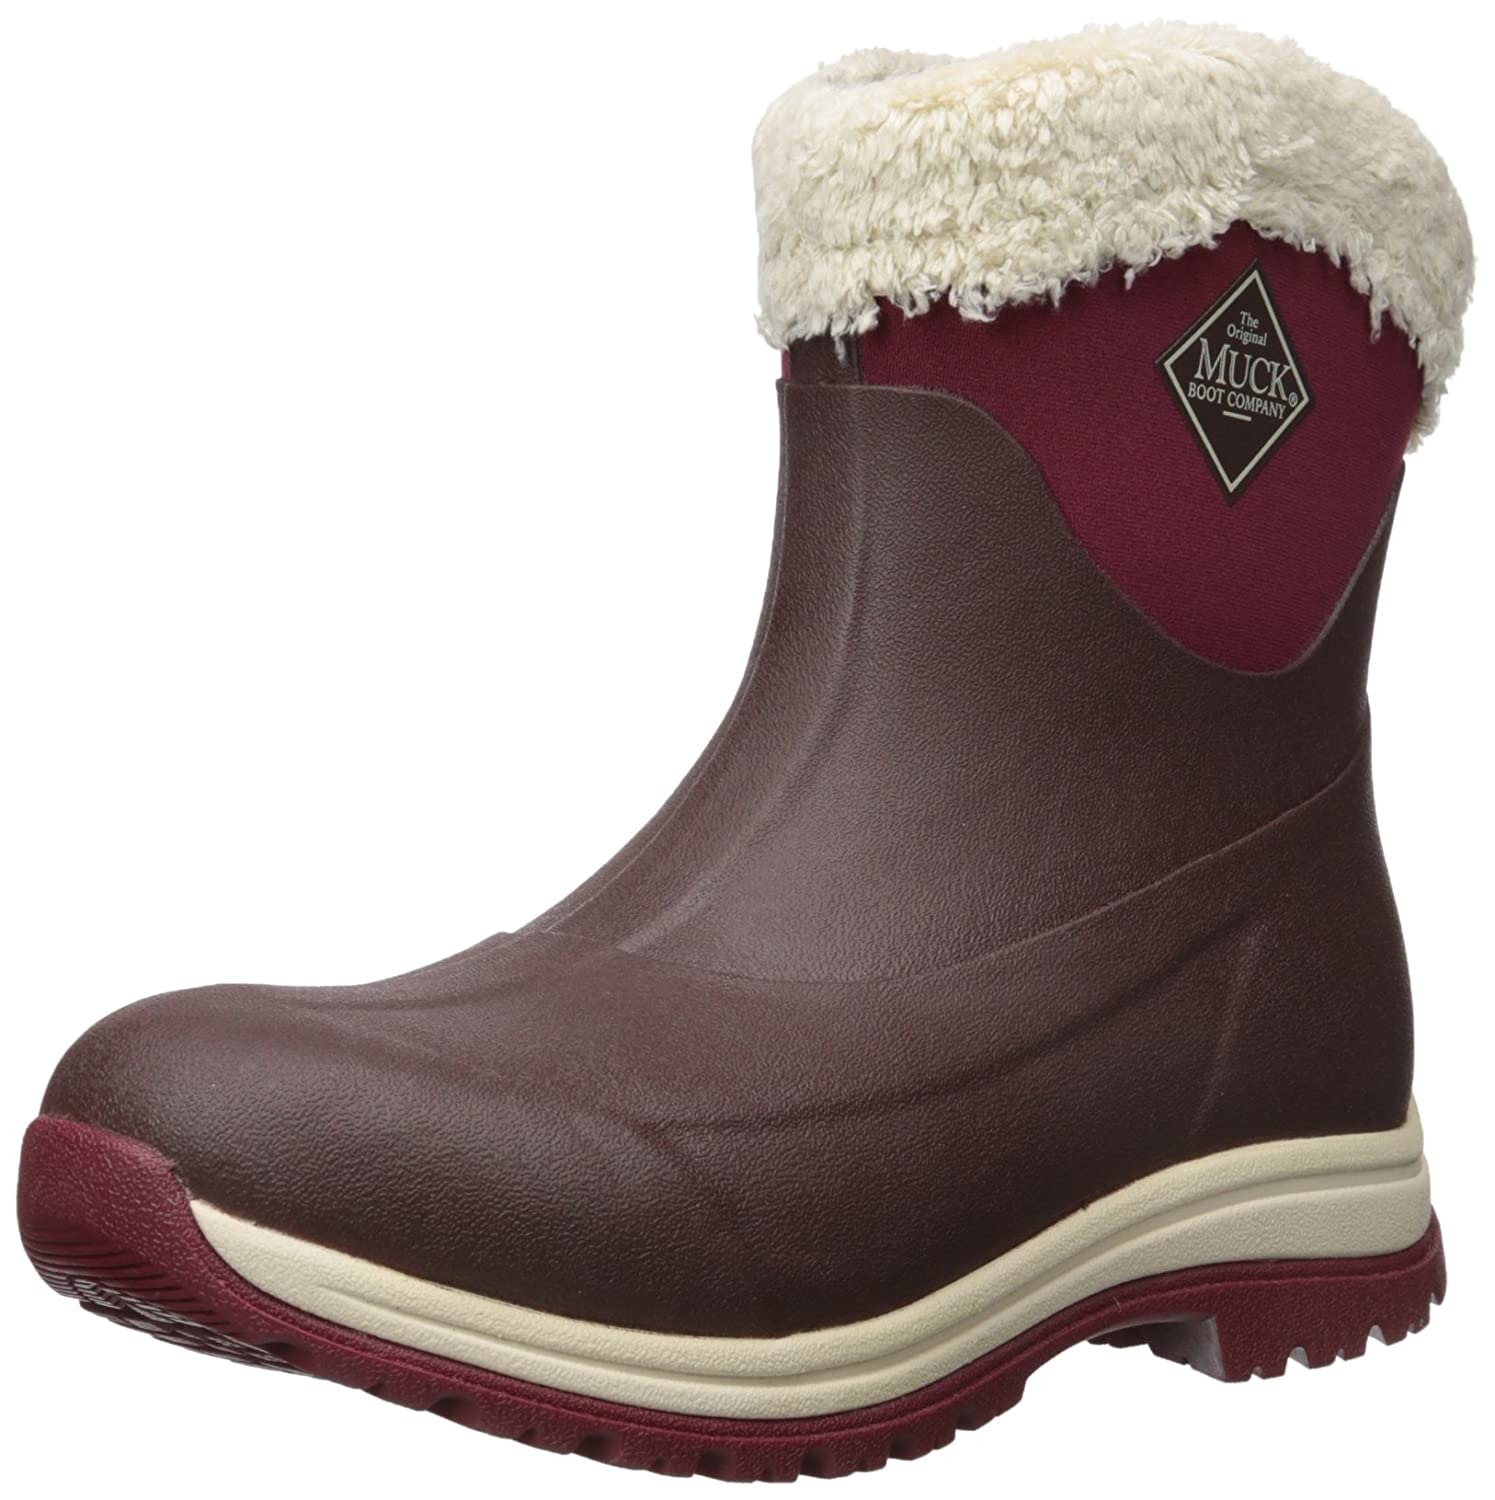 Muck Arctic Après Mid-Height Casual Slip-On Rubber Women's Winter Boots B01GK9426C 6 B(M) US|French Roast/Cordovan